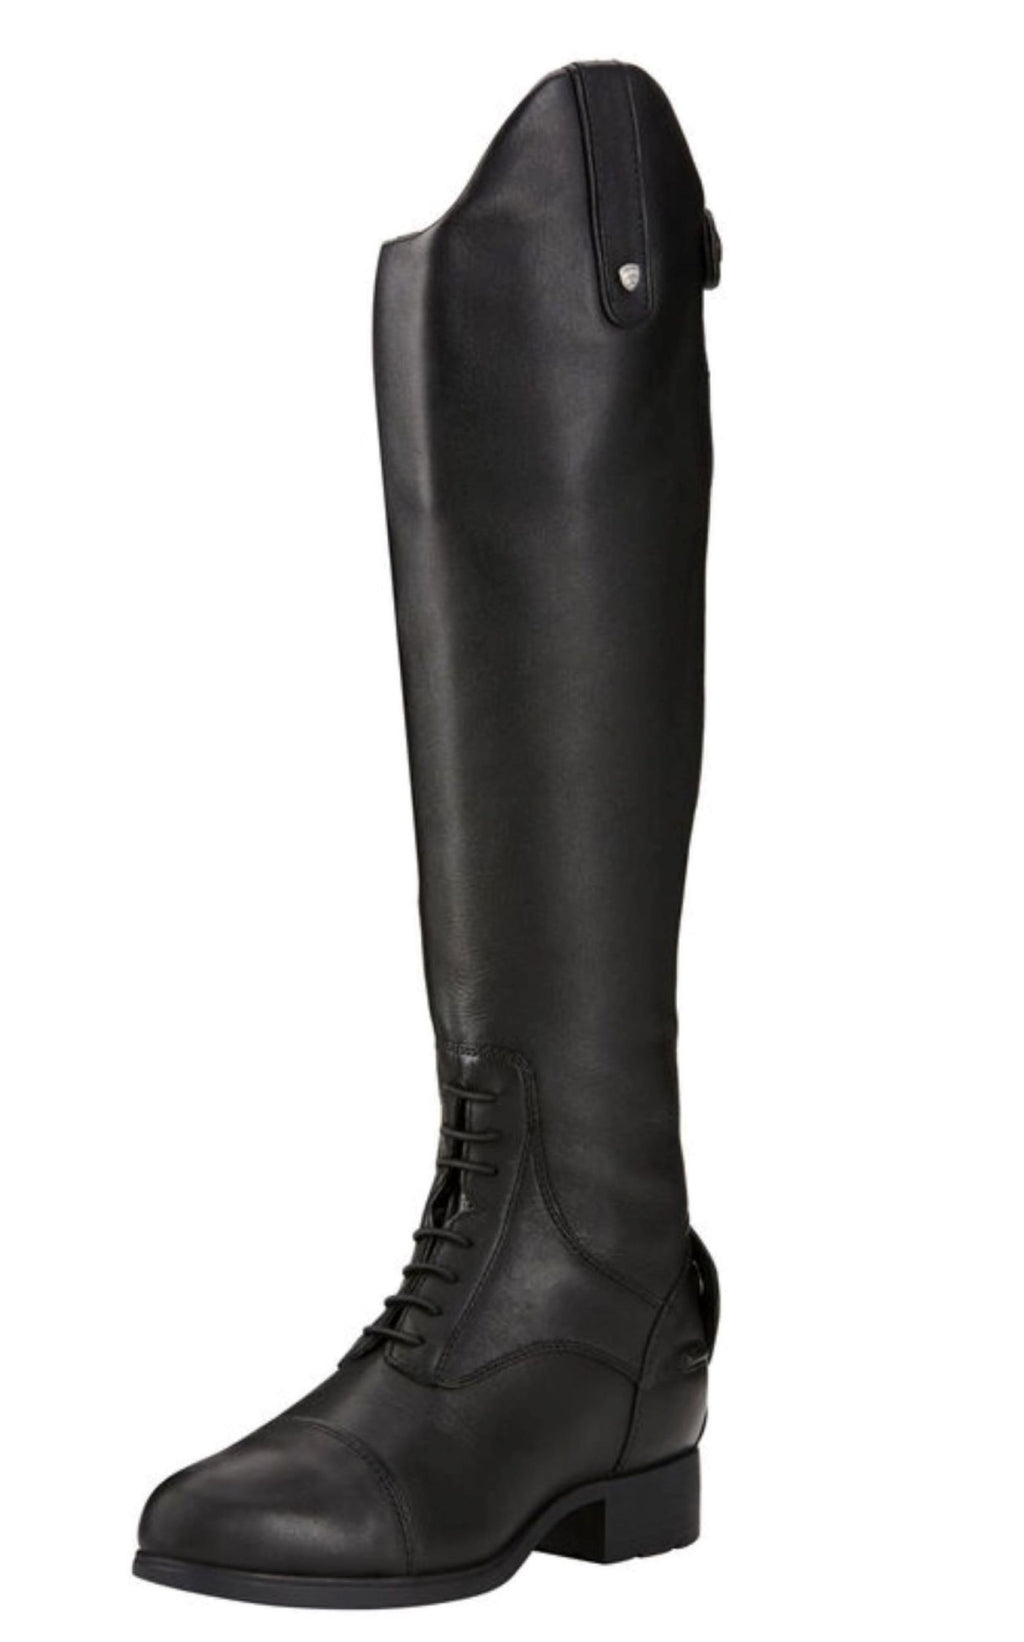 Ariat Bromont Pro Waterproof Insulated Tall Boot **CLOSEOUT**